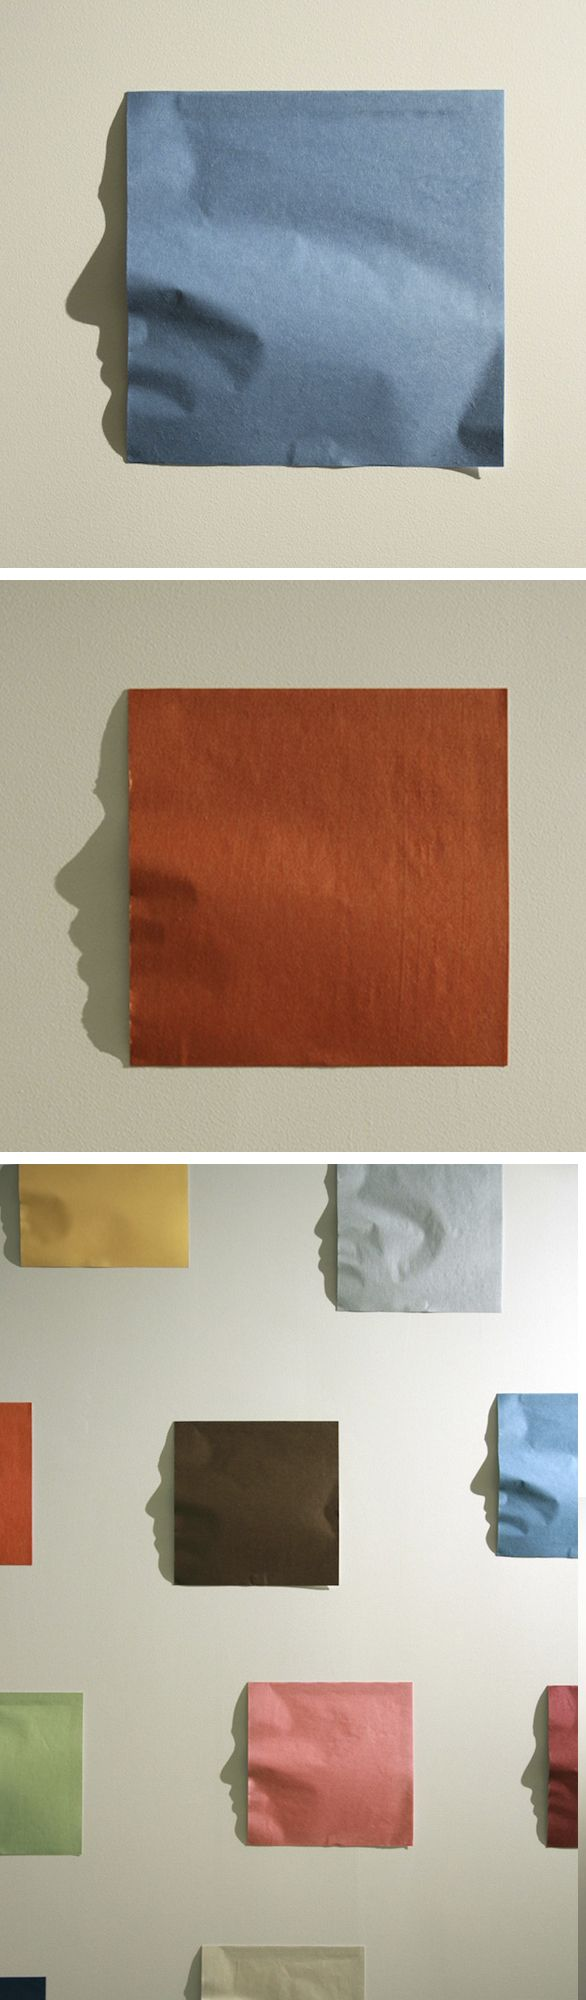 Paper + Light = Shadow portraits - heul creatief inzicht!